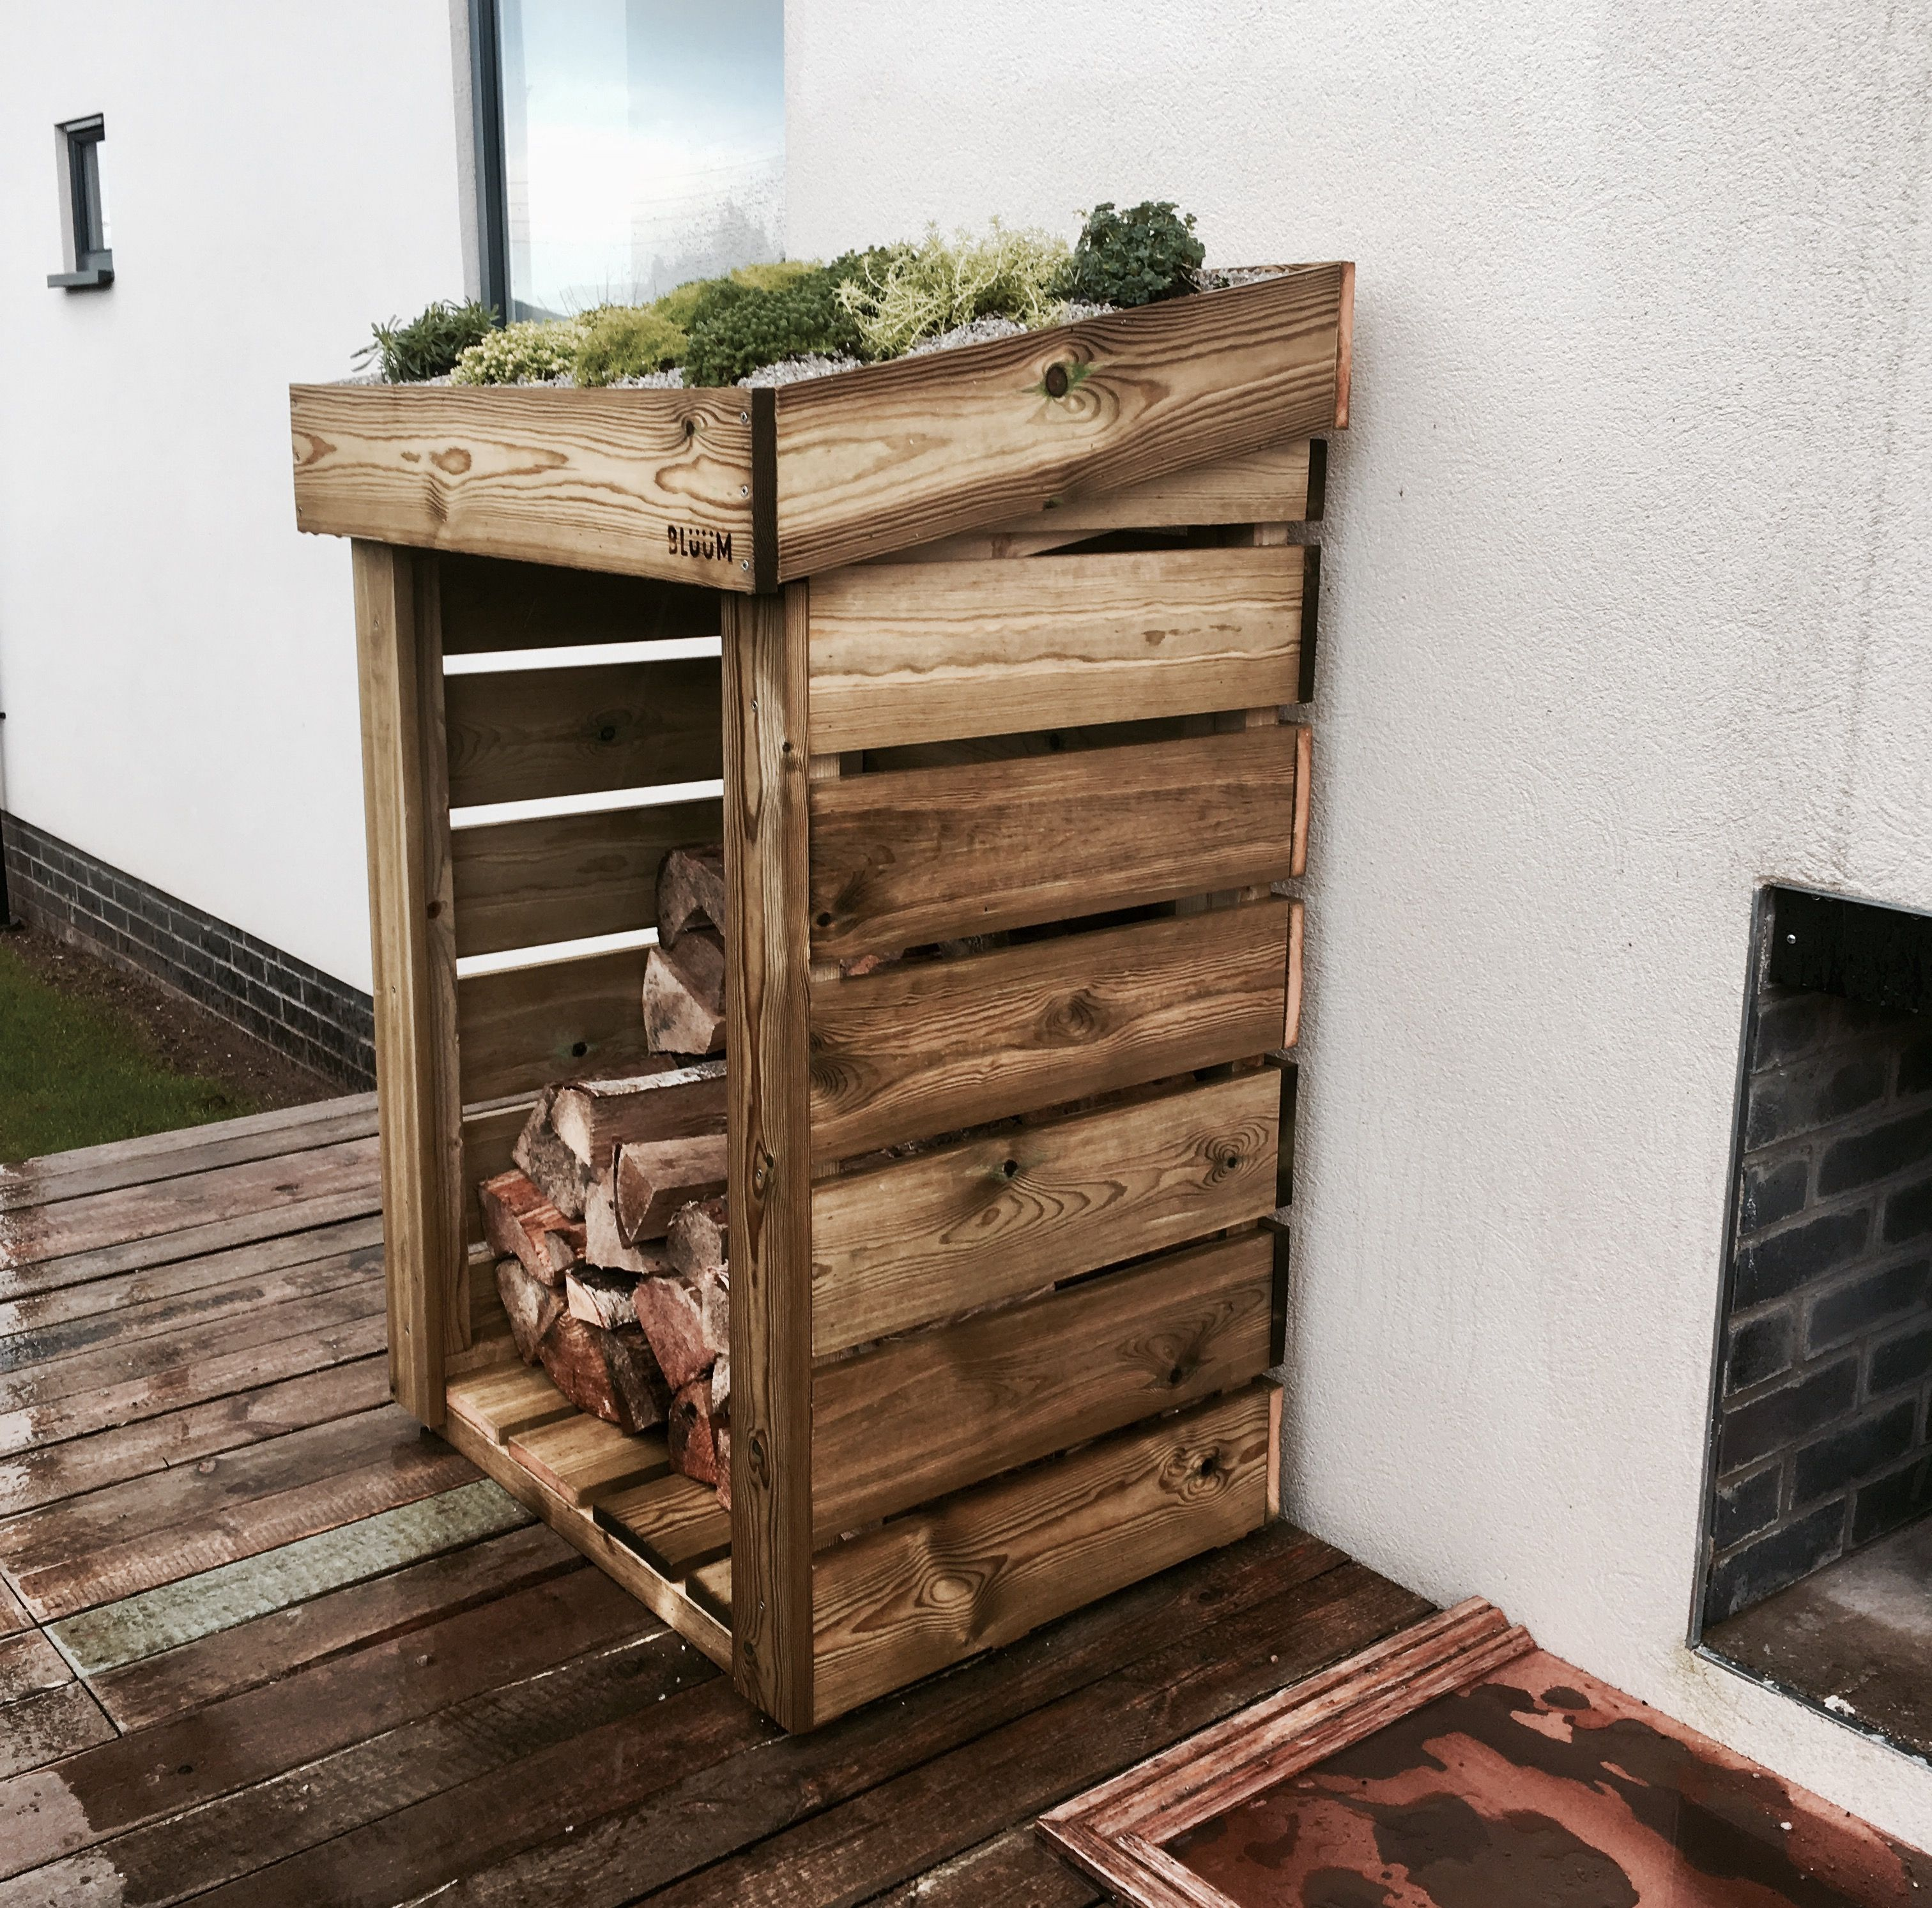 a u0027mini u0027 bluum log store hand made and situated next to a lovely